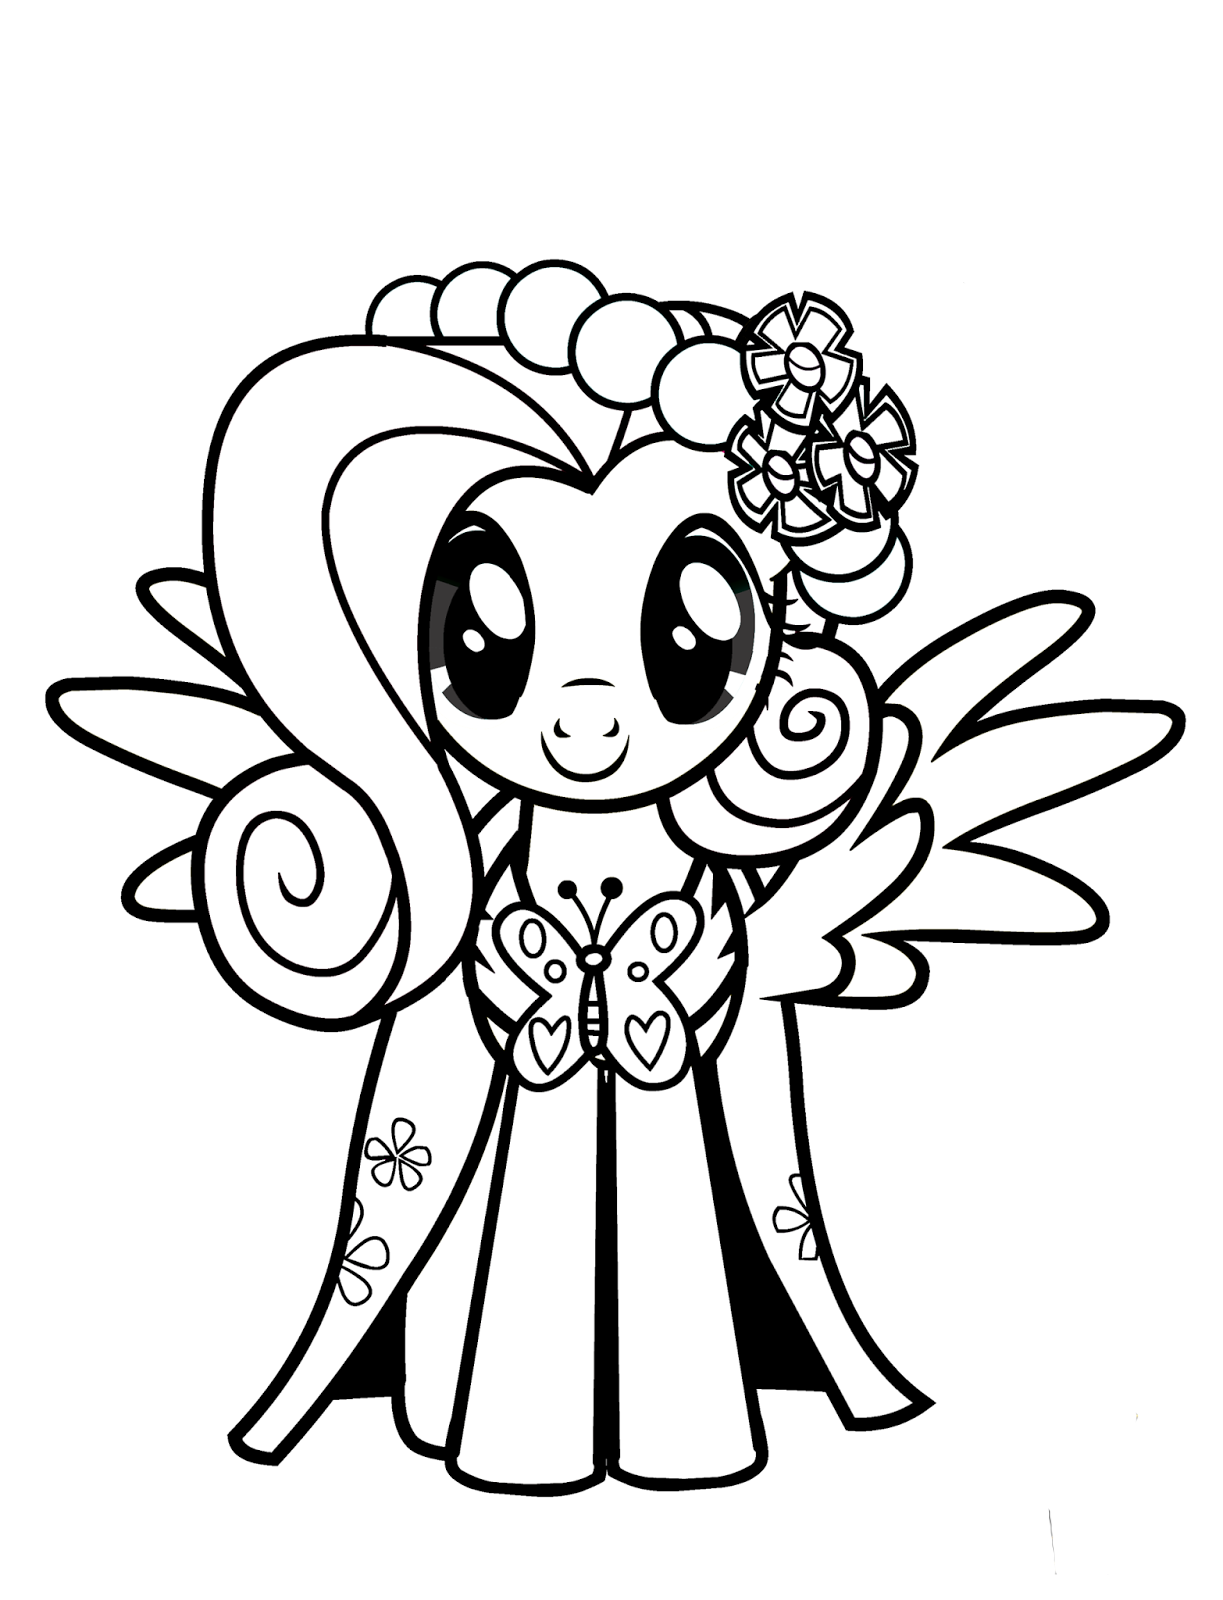 Coloring Pages My Little Pony The Movie : Fluttershy coloring pages best for kids